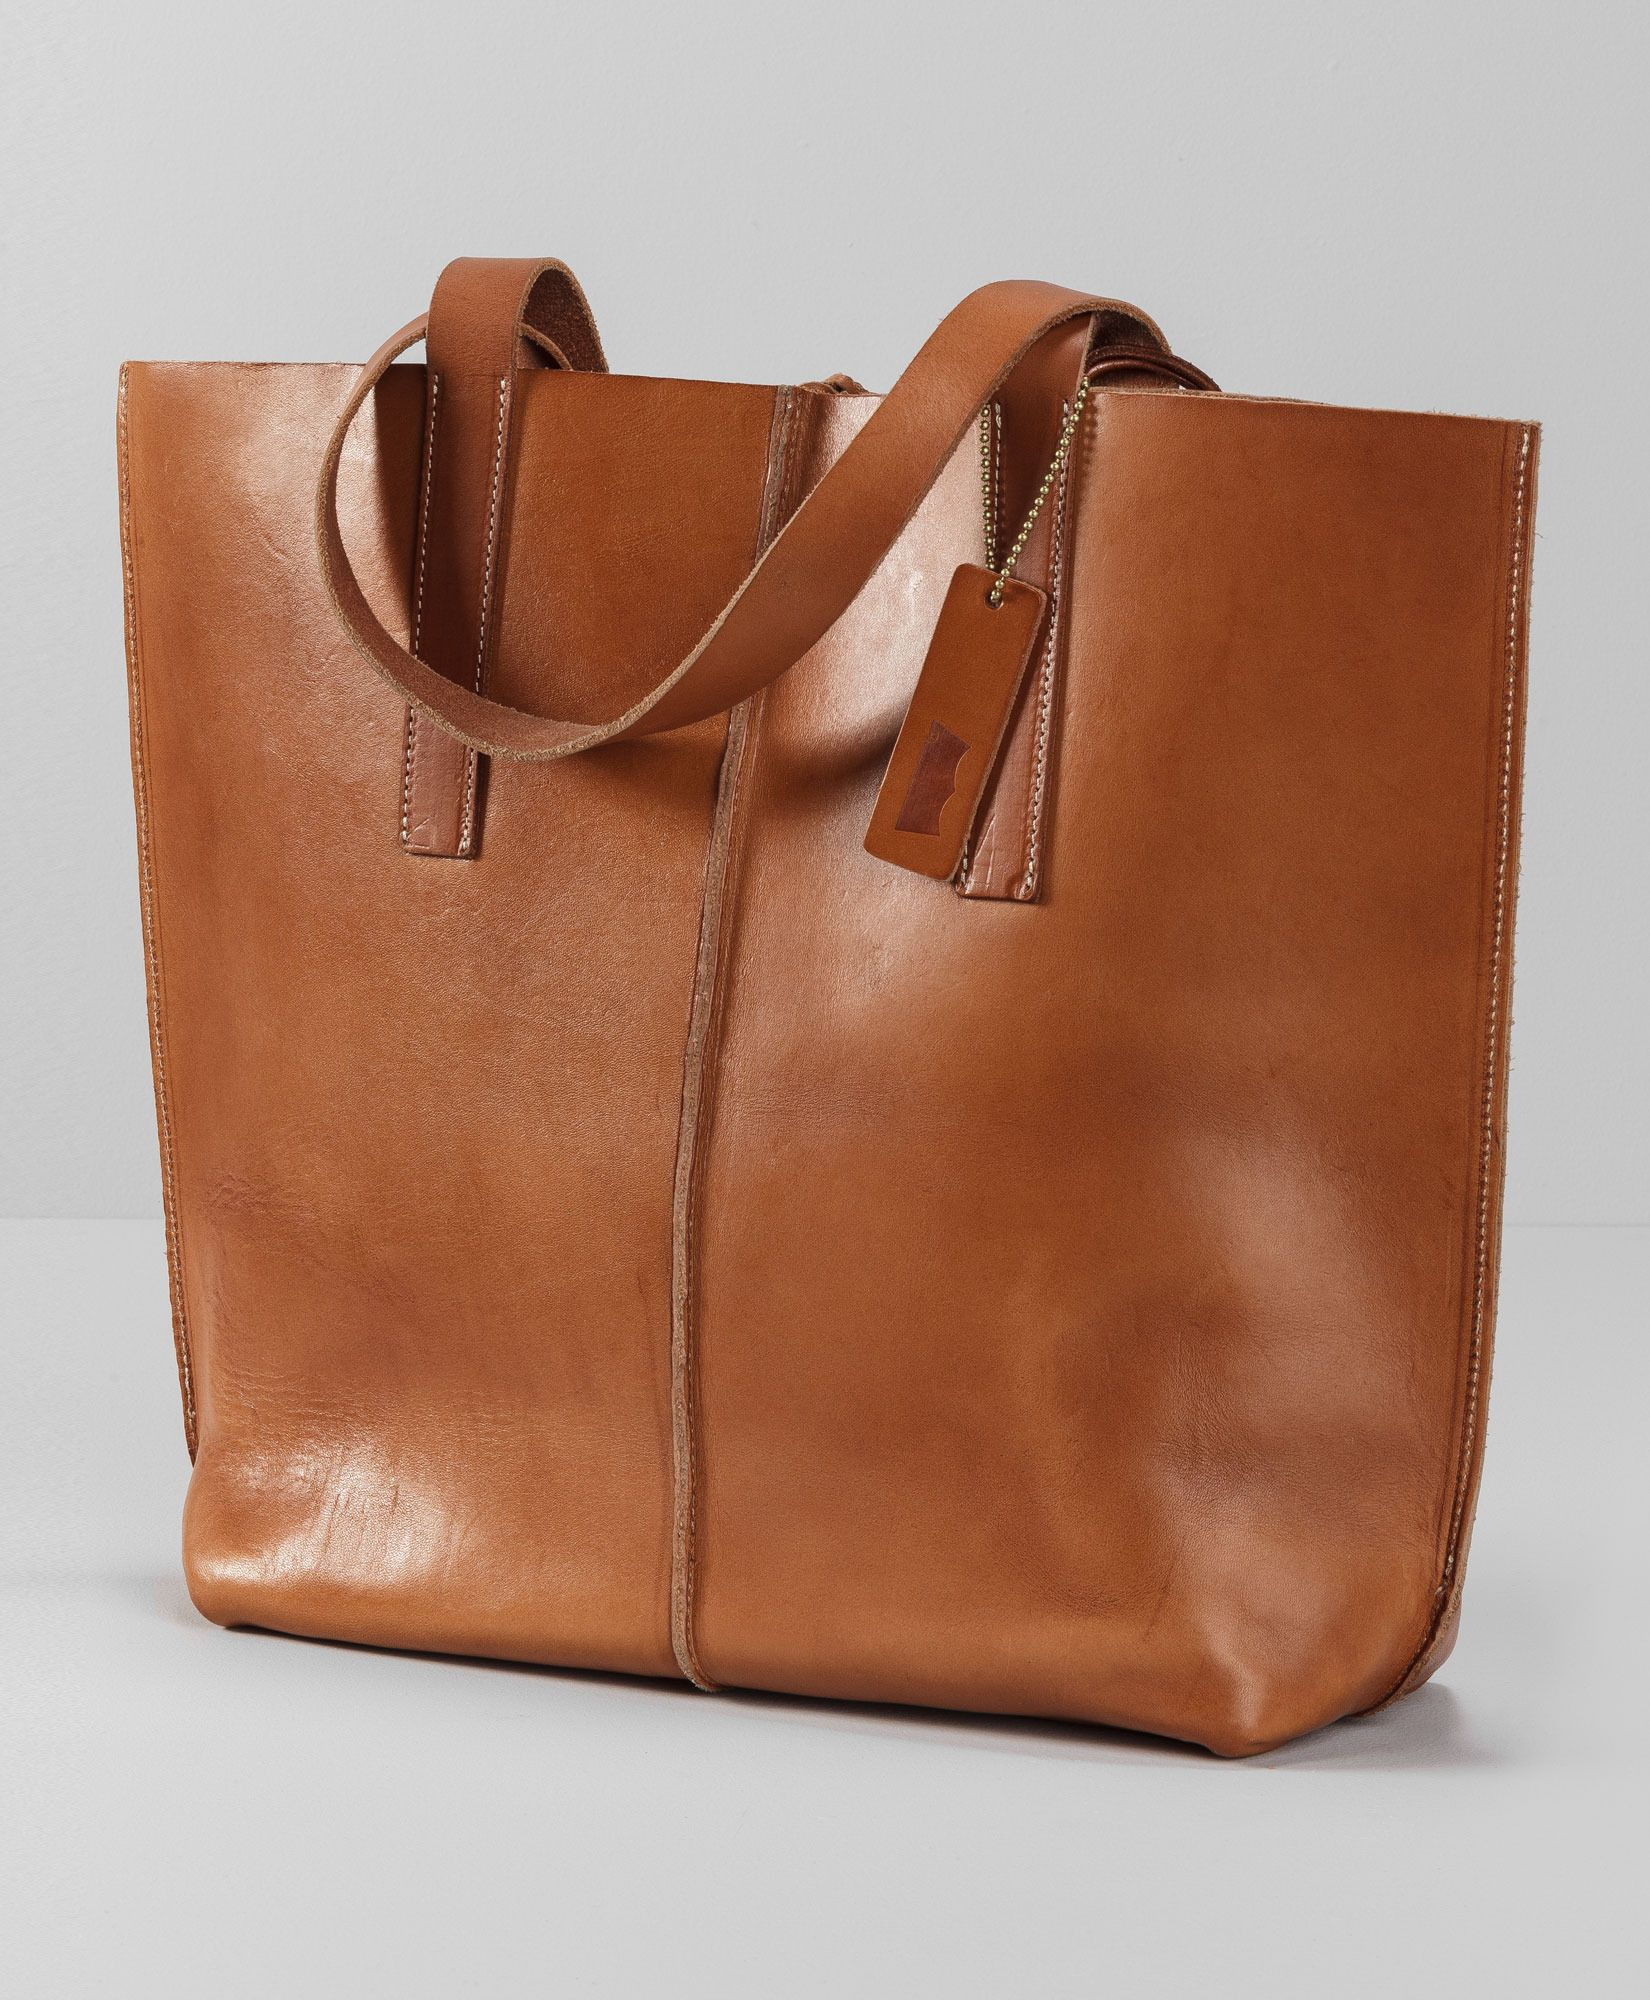 33a0ec162b69b Levi s Crafted Leather Tote Bag